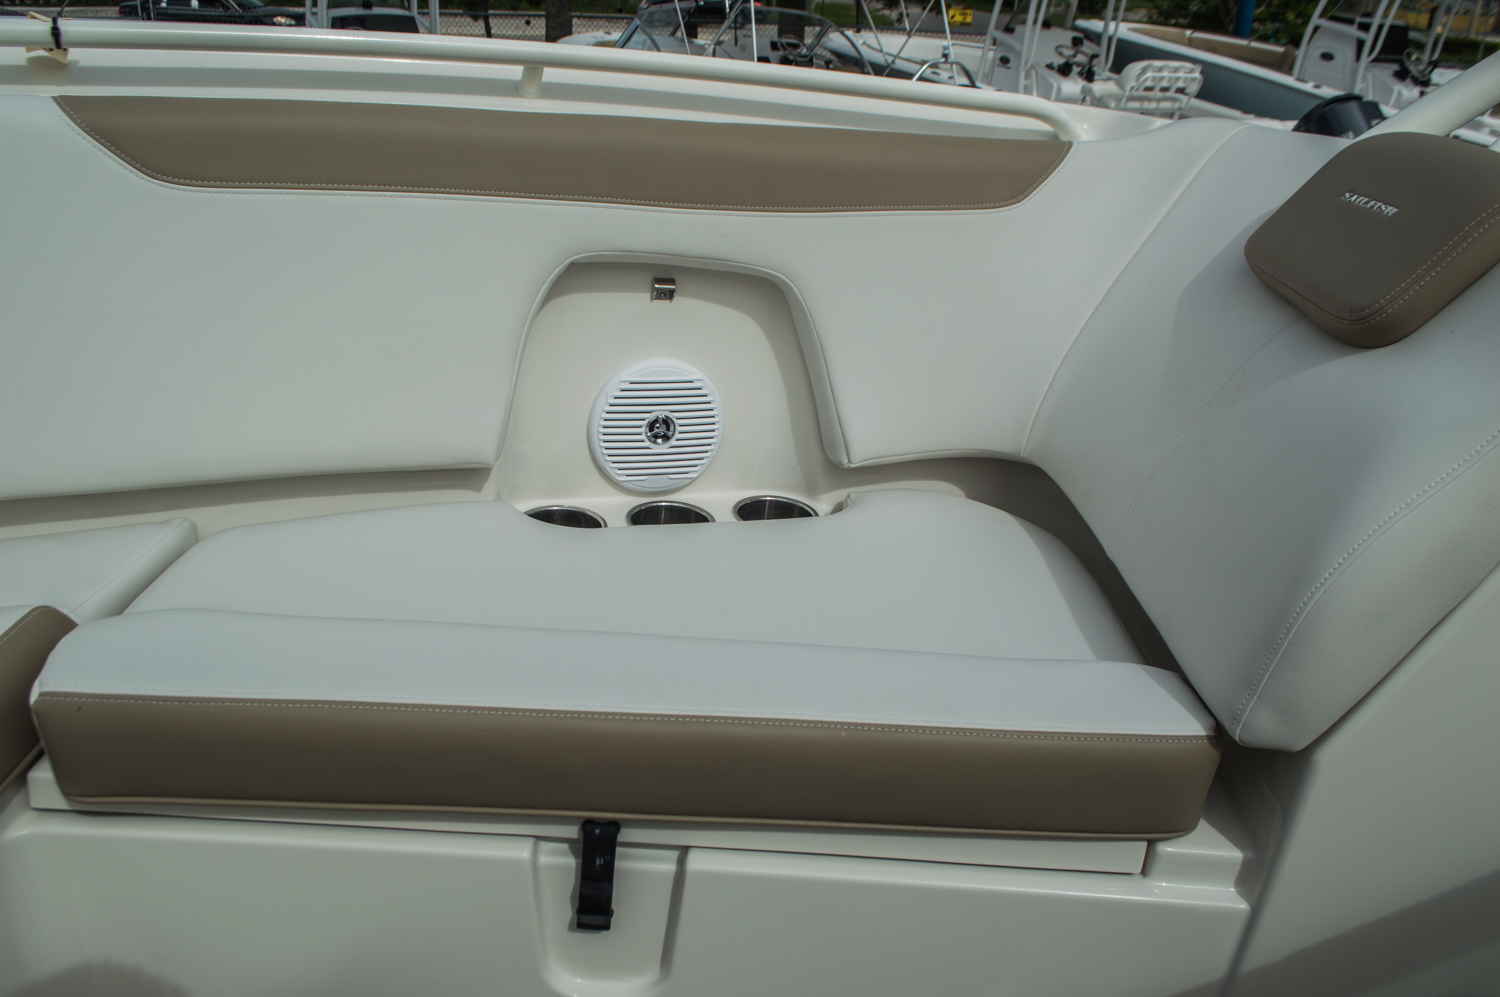 Thumbnail 14 for New 2016 Sailfish 275 Dual Console boat for sale in West Palm Beach, FL